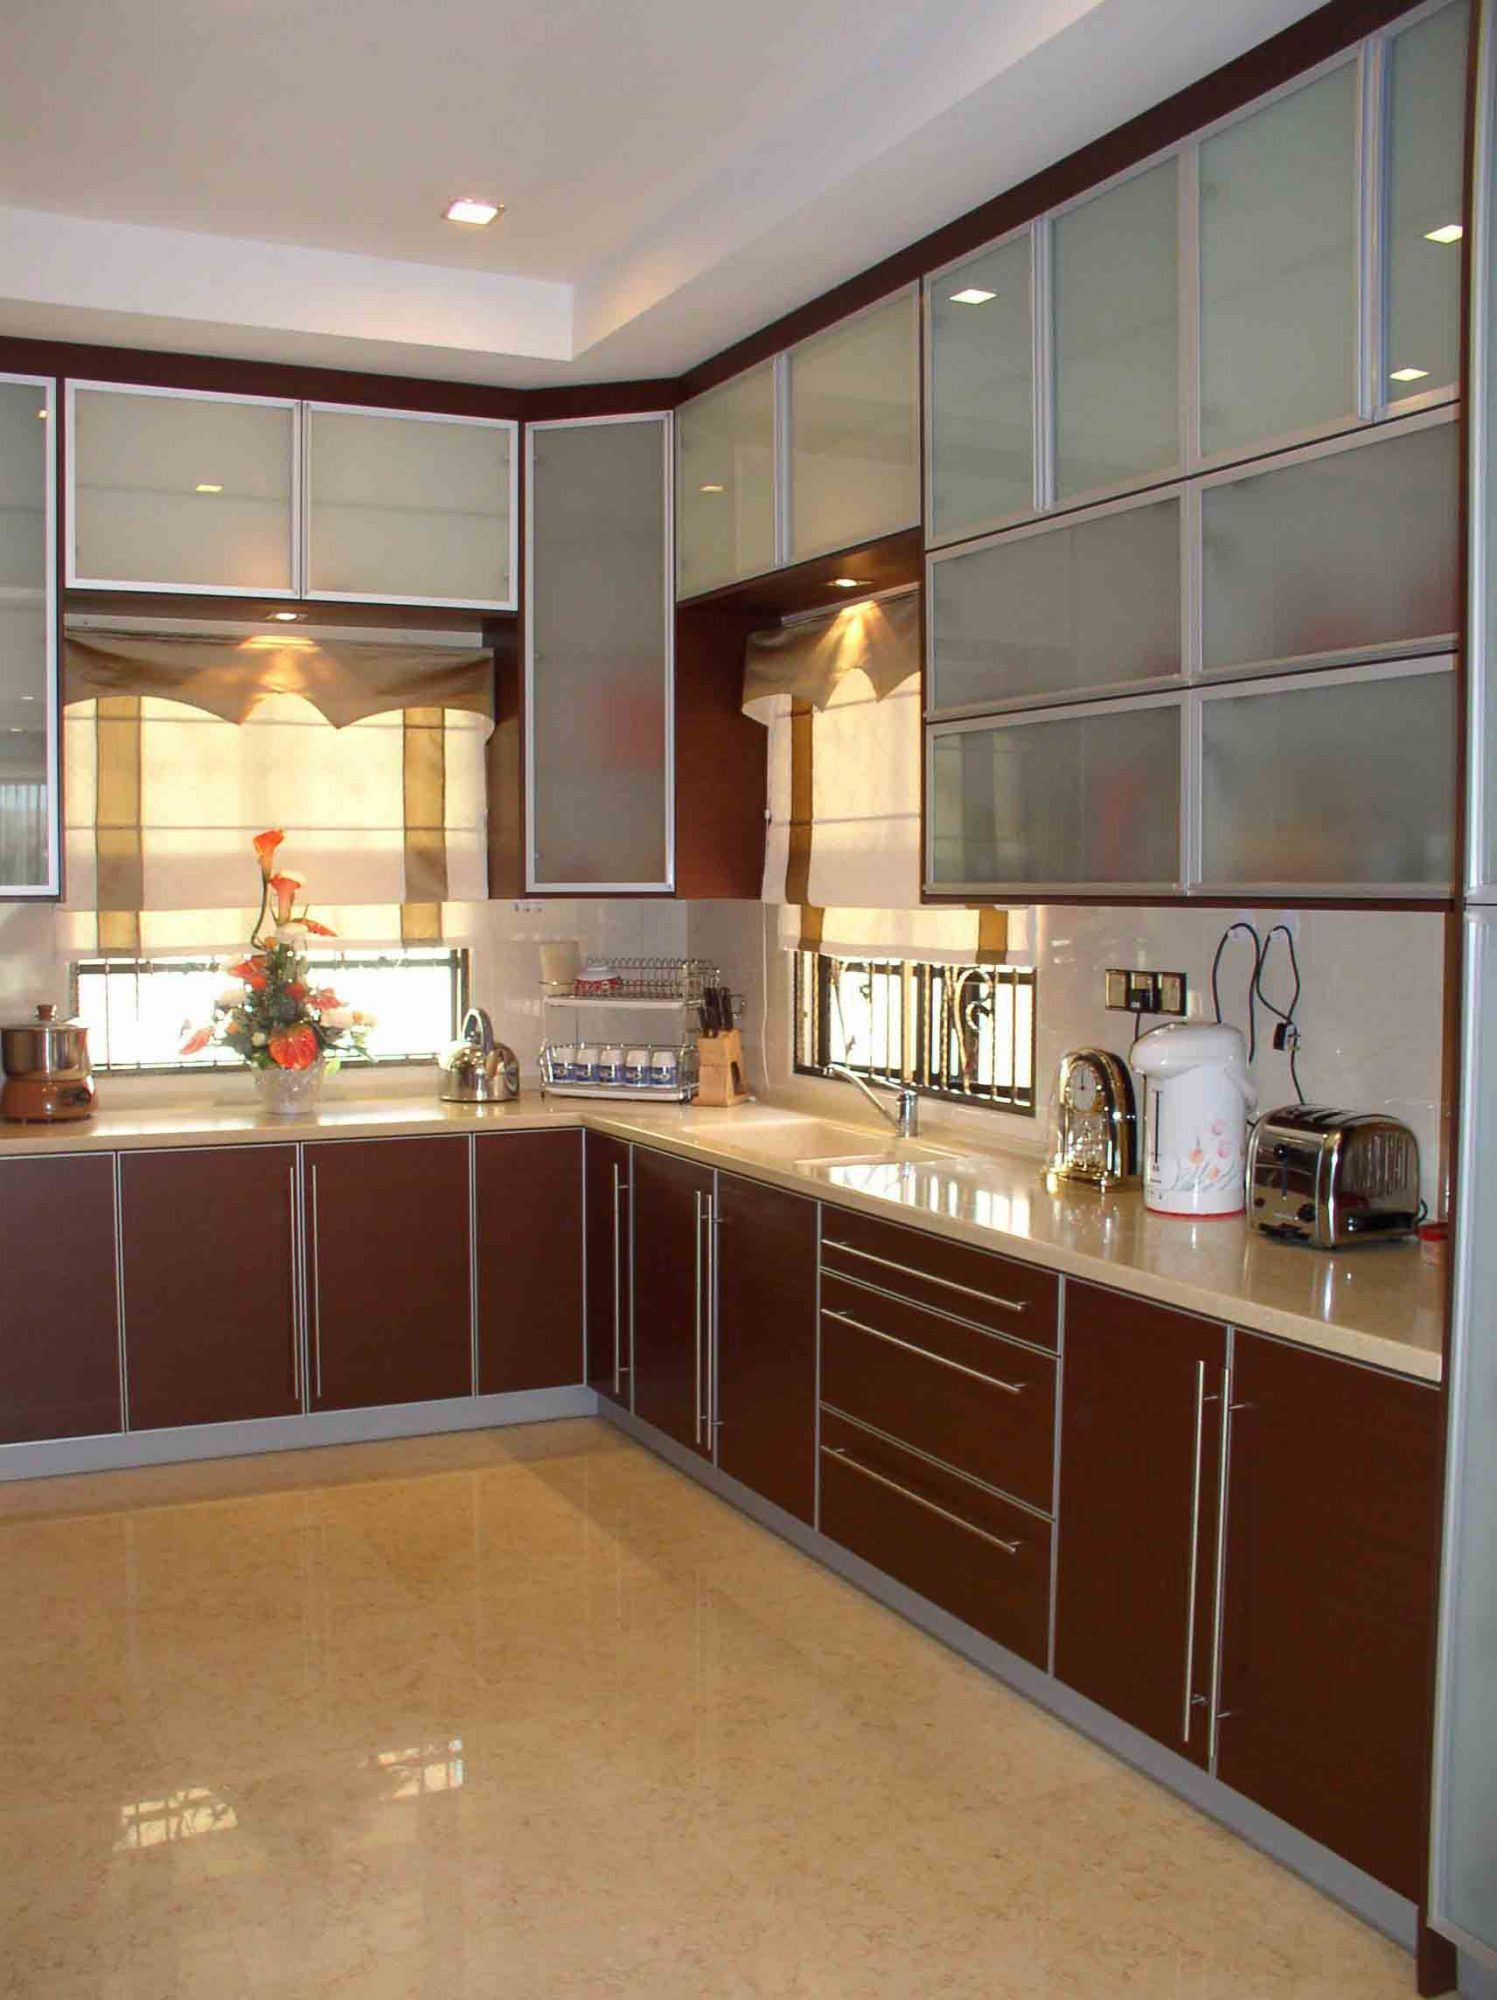 Best Your Pinspiration For Modular Kitchen Designs In India 400 x 300